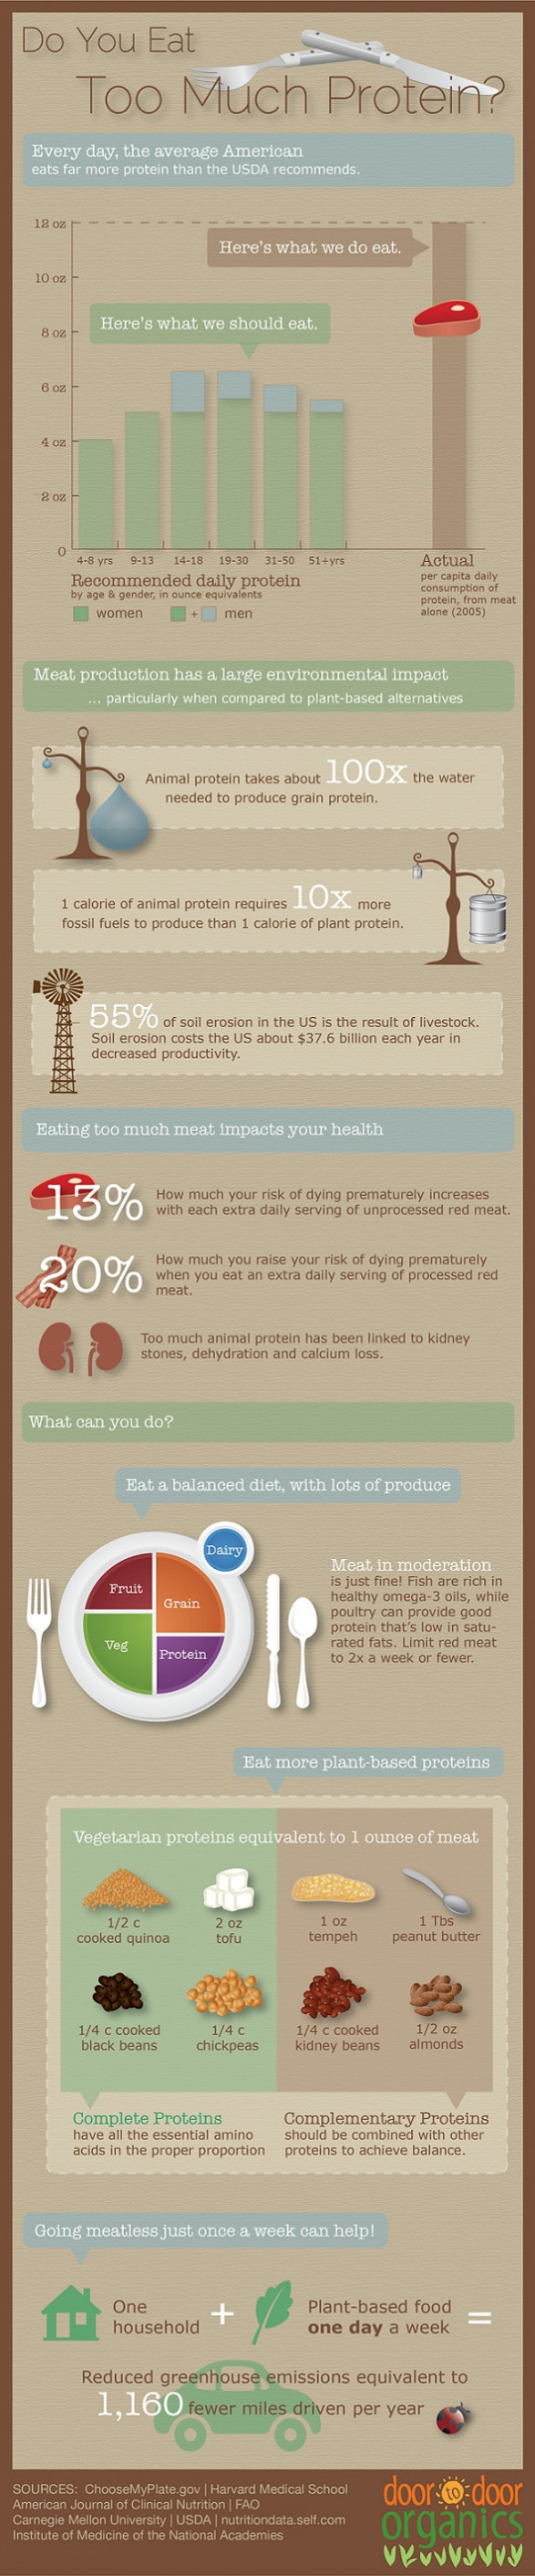 Infographic: Do you eat too much protein?